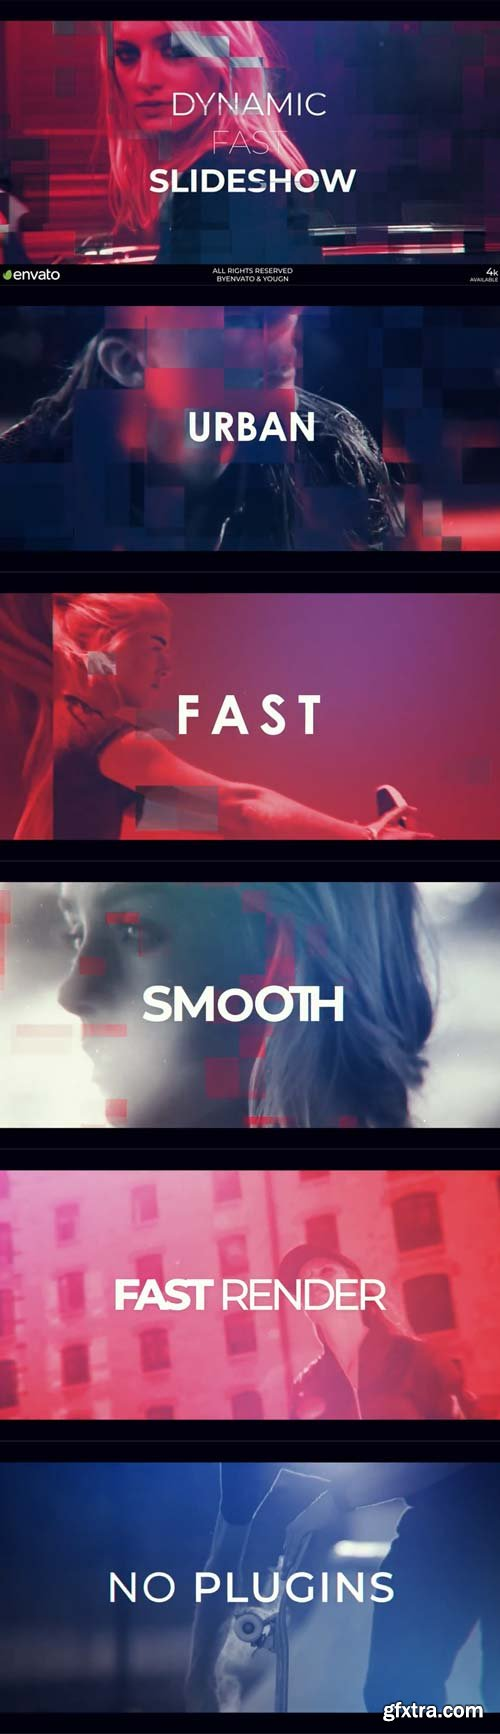 Videohive - Dynamic Fast Slideshow - 22035121